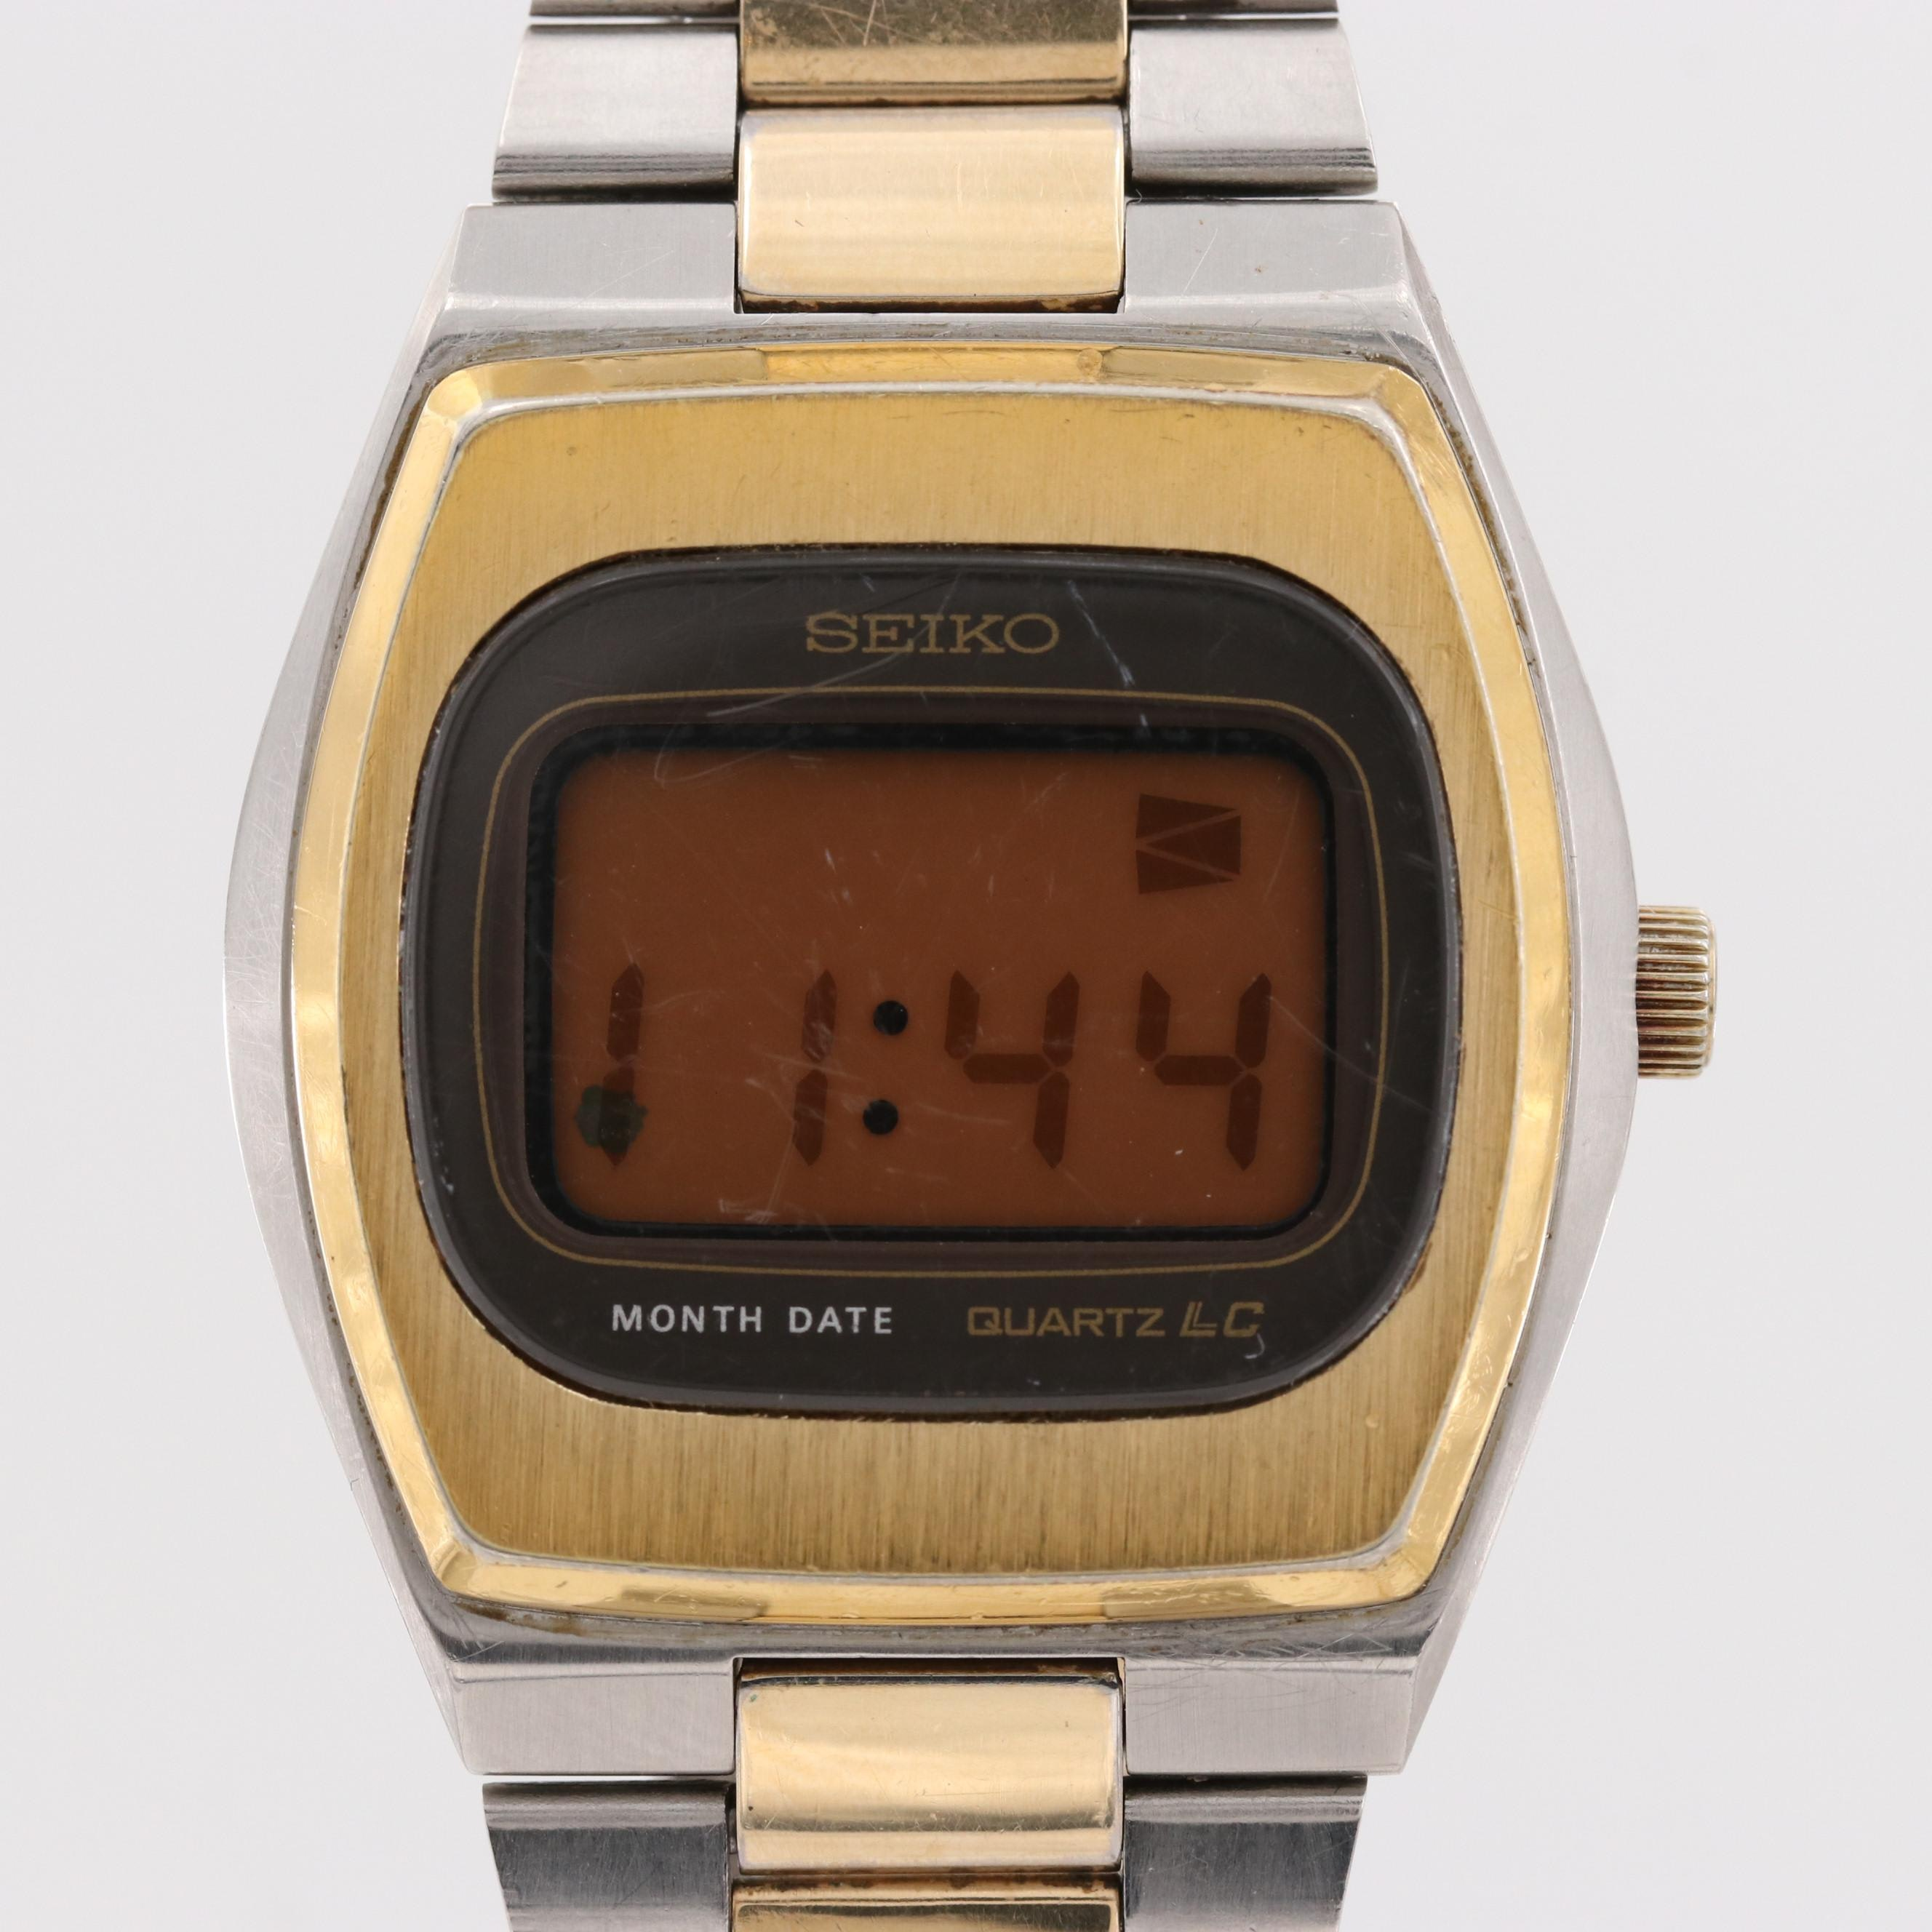 Vintage Seiko 0532-5009 Two Tone Digital Quartz Wristwatch